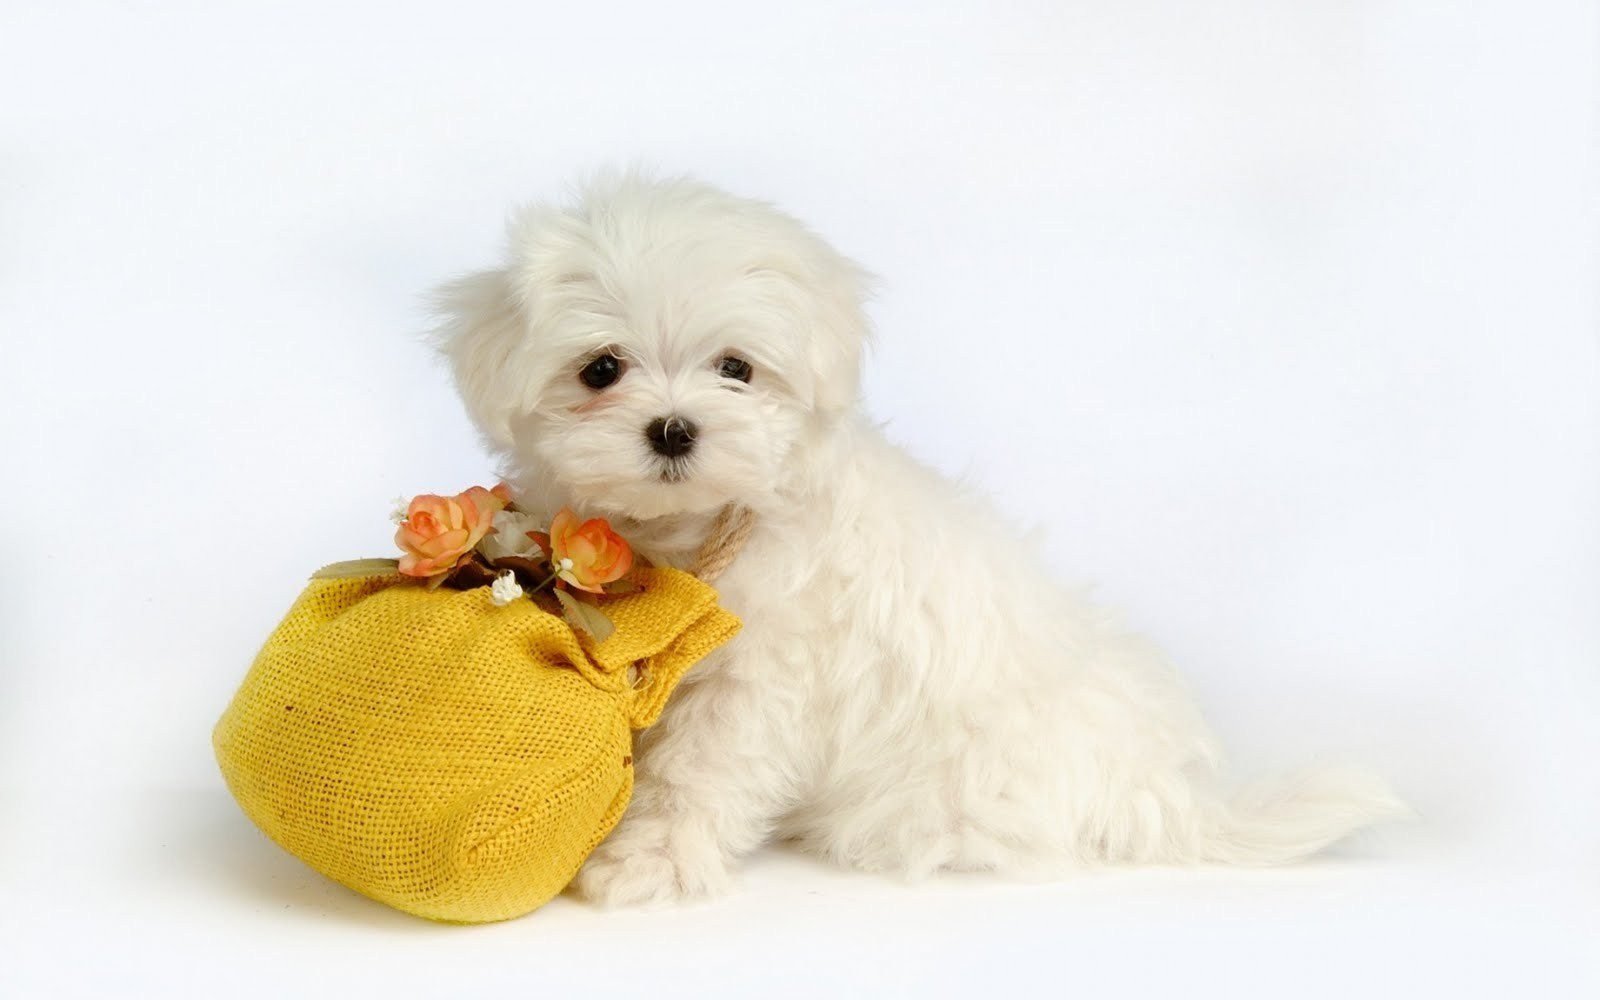 Puppies images Cute Puppy wallpaper photos 15813371 1600x1000